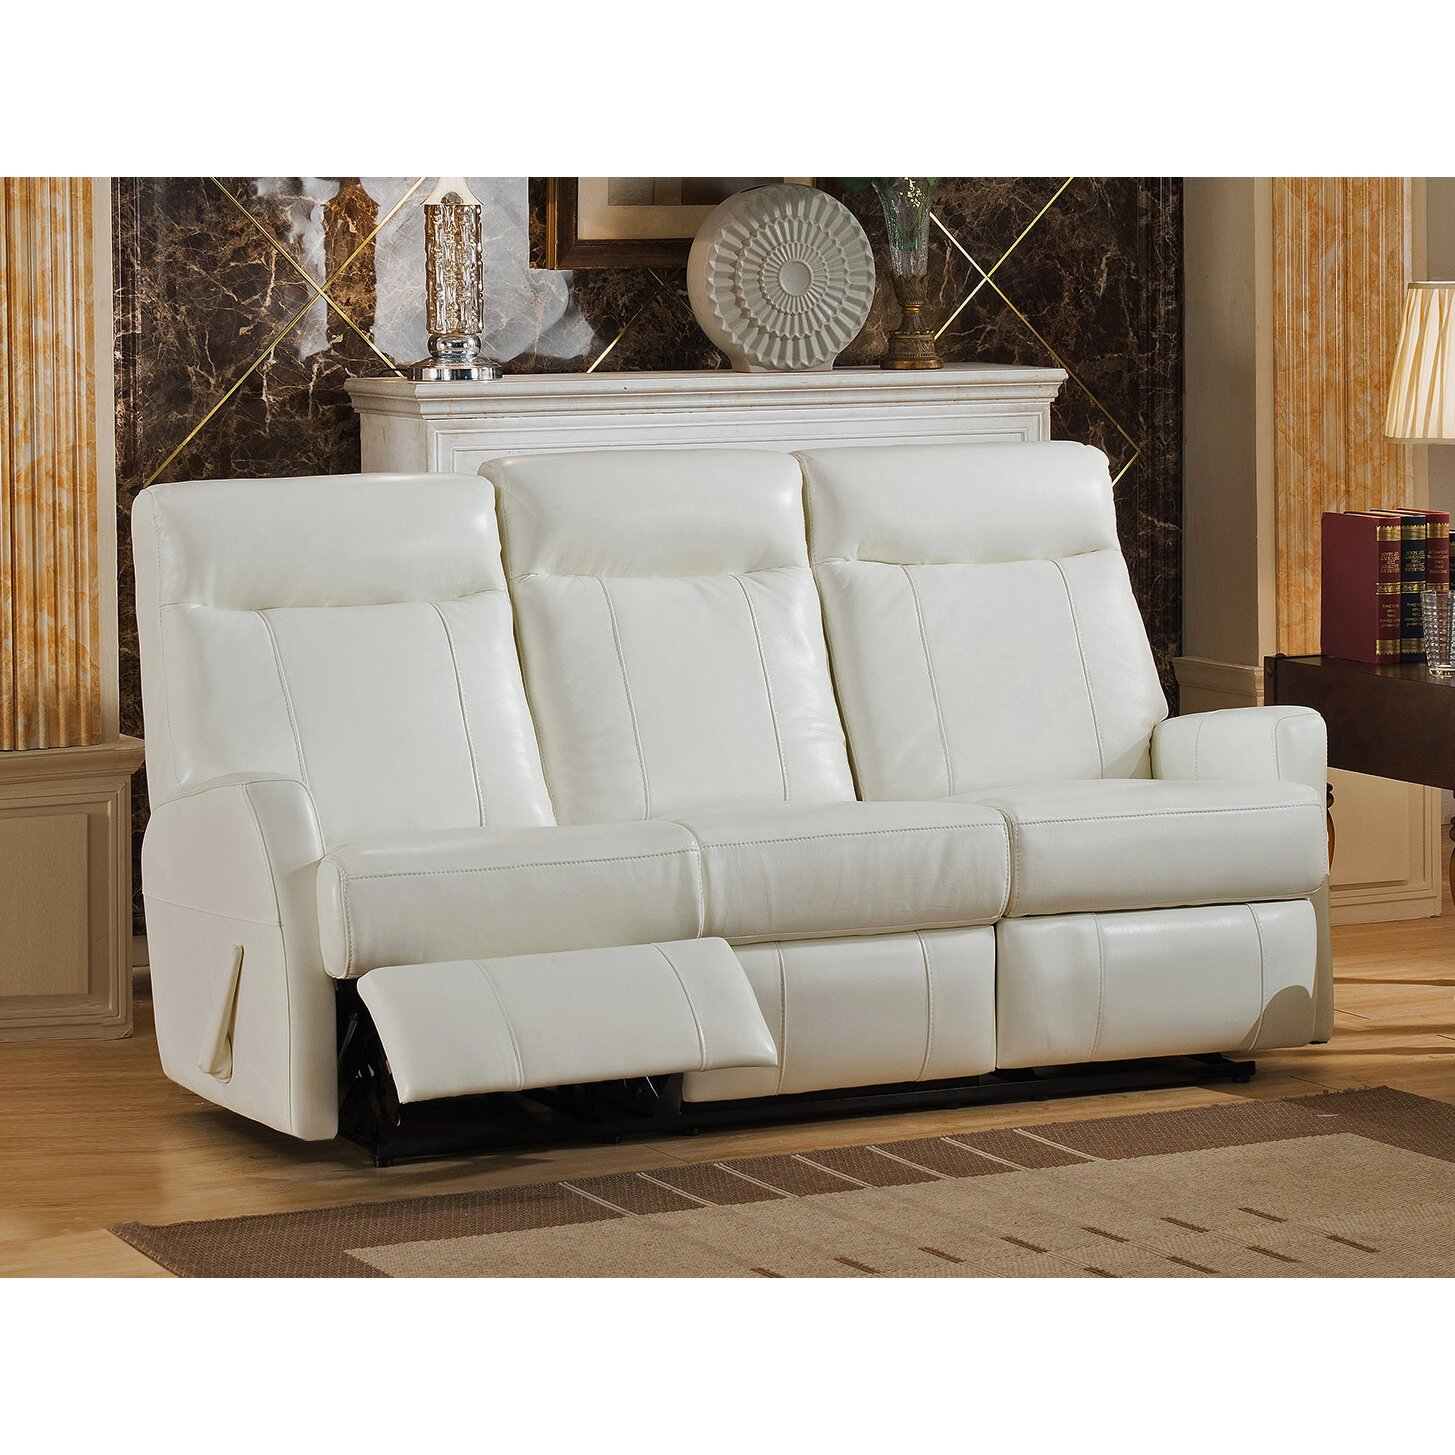 Amax toledo 3 piece leather living room set for Three piece leather living room set